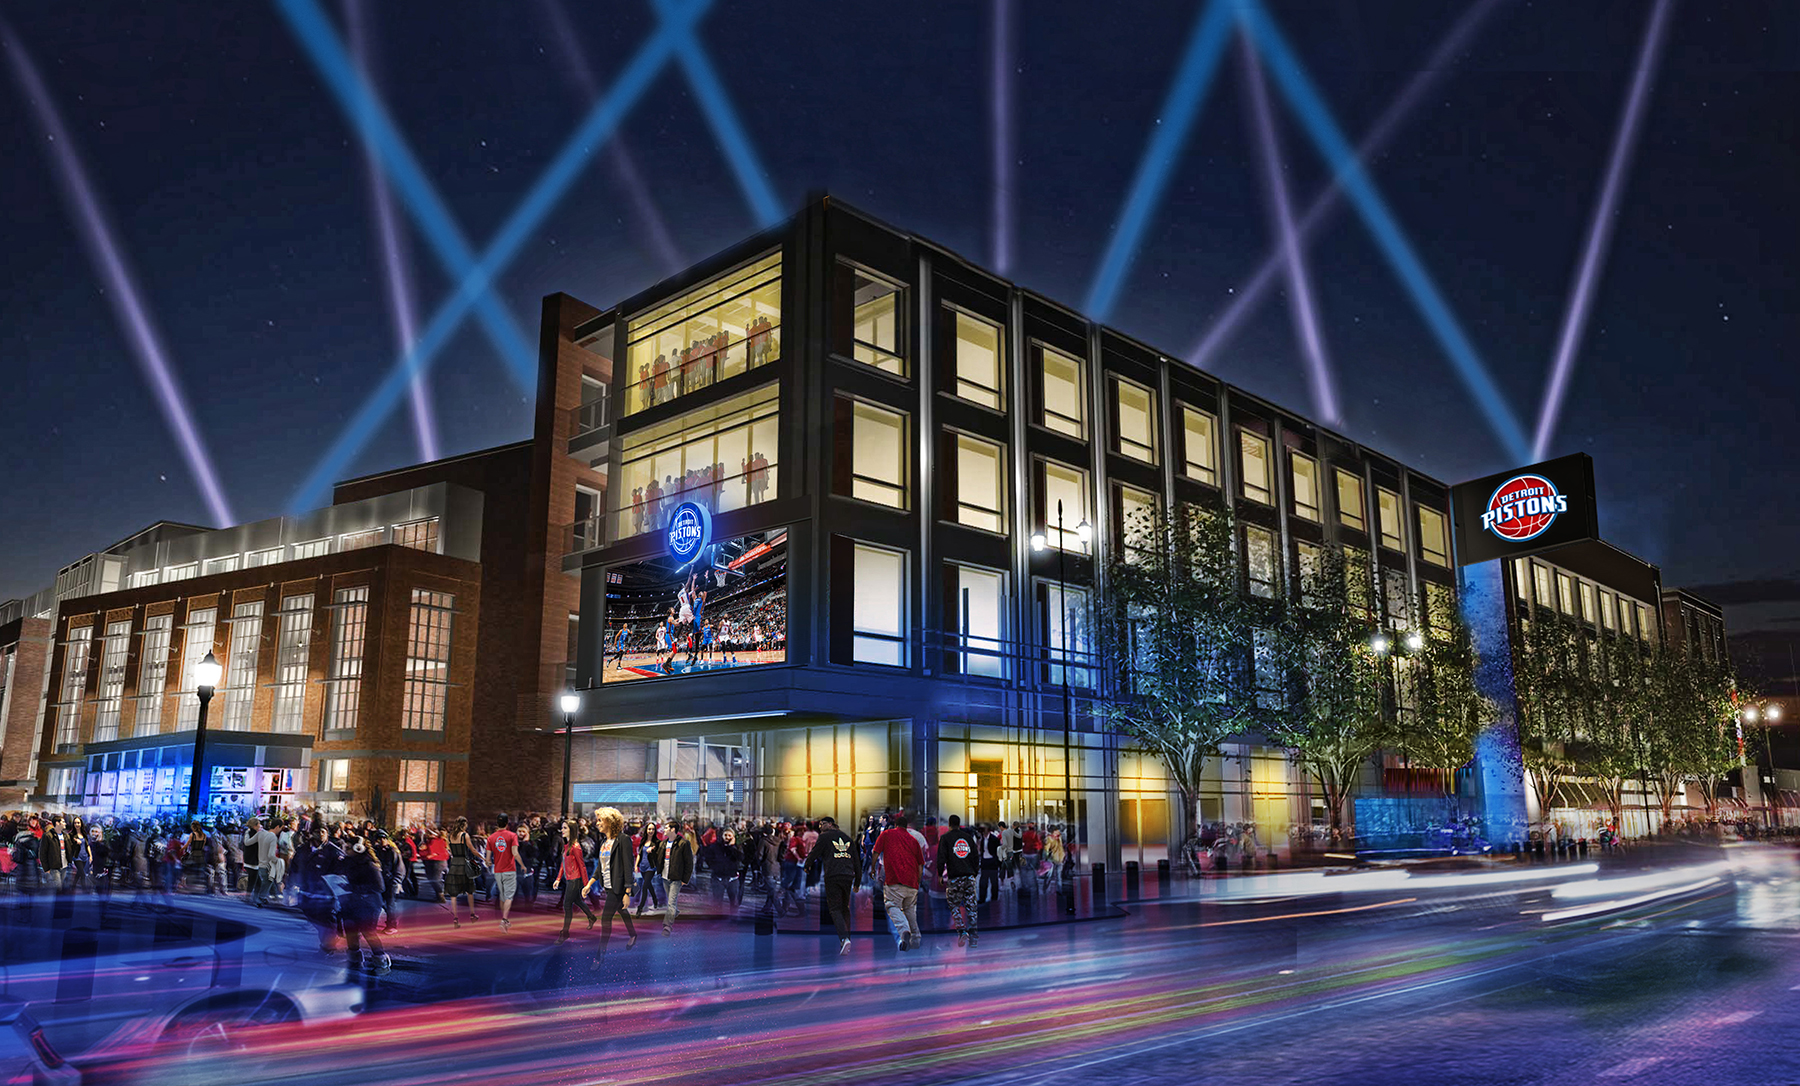 Detroit Red Wings Arena >> Here's what Detroit basketball will look like in Detroit - Curbed Detroit